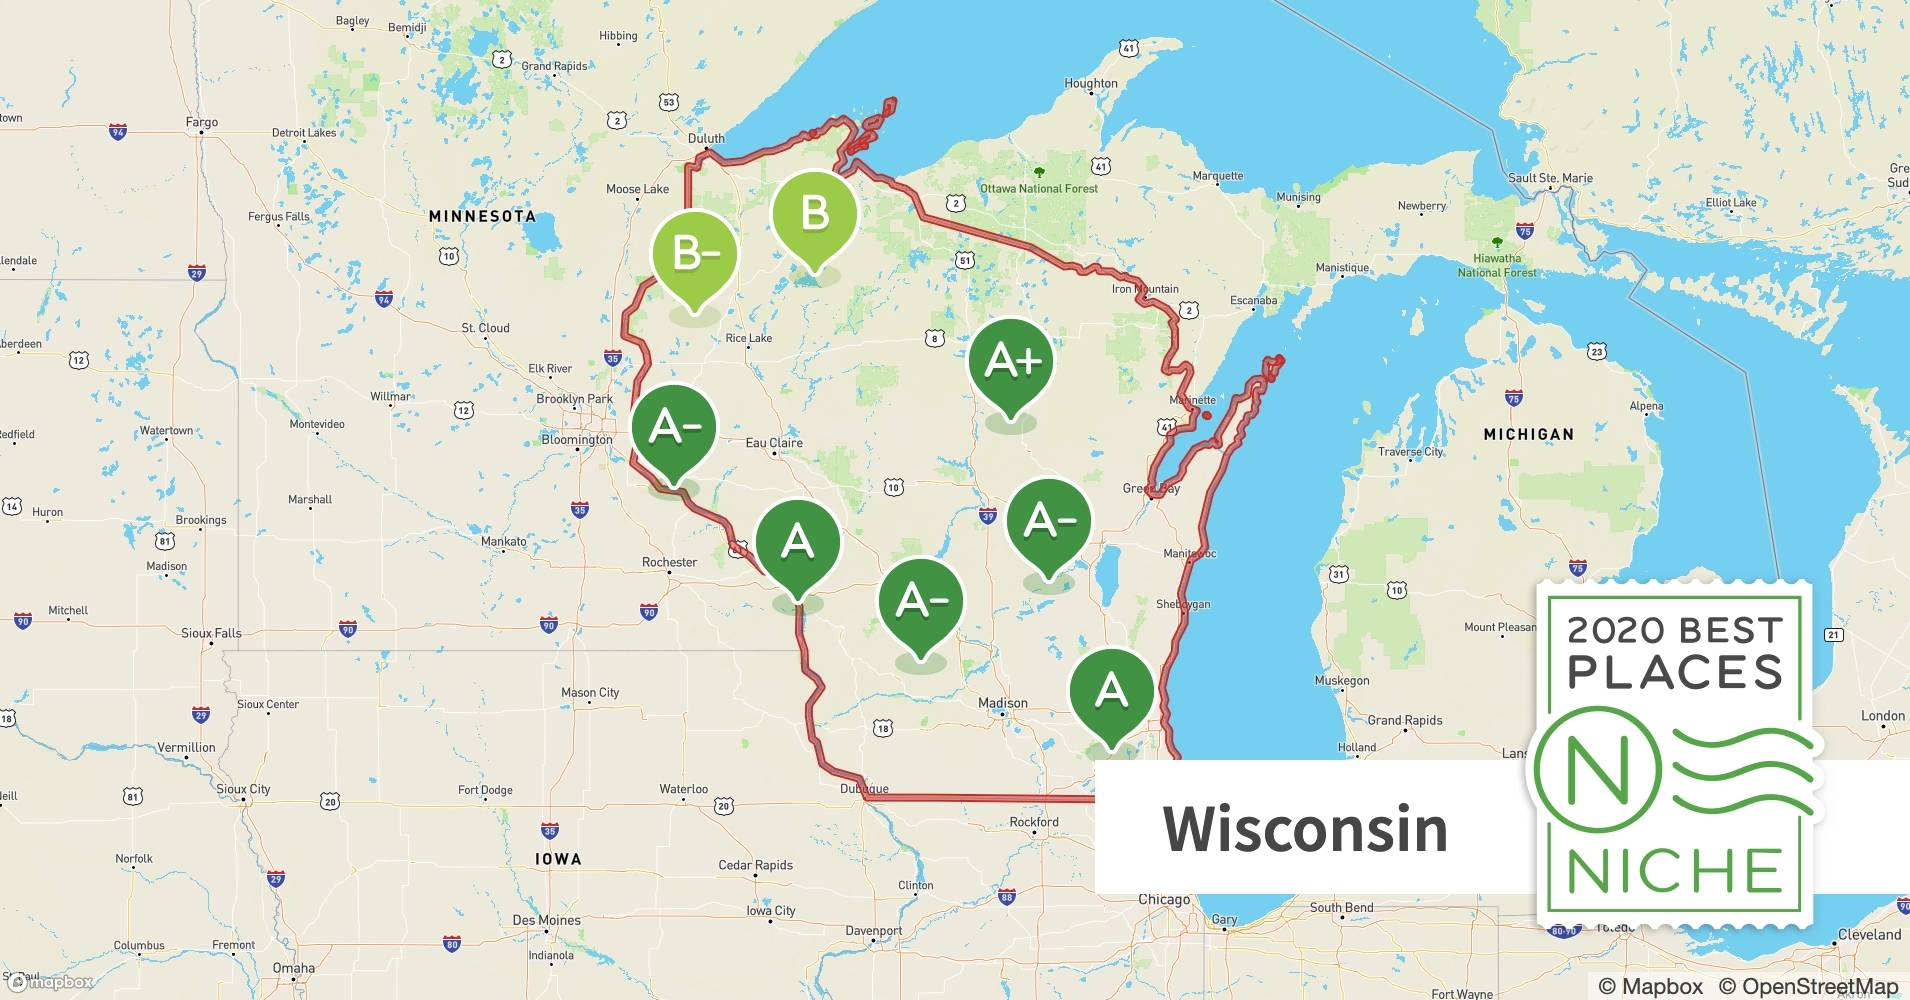 2020 Best Places To Retire In Wisconsin Niche